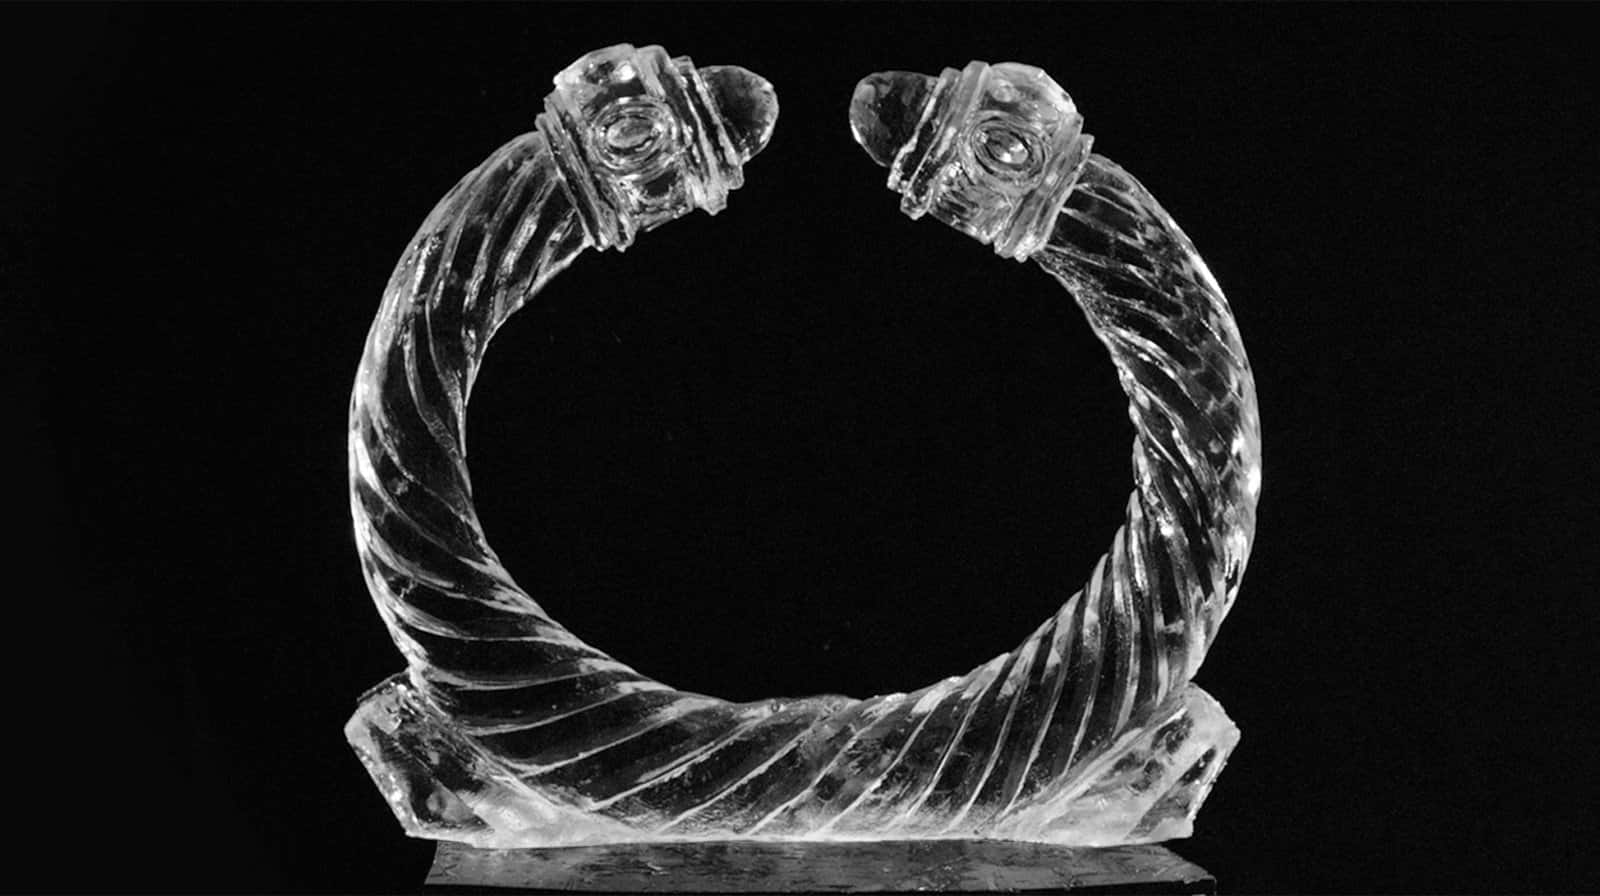 A detail of a Cable bracelet sculpted out of ice.